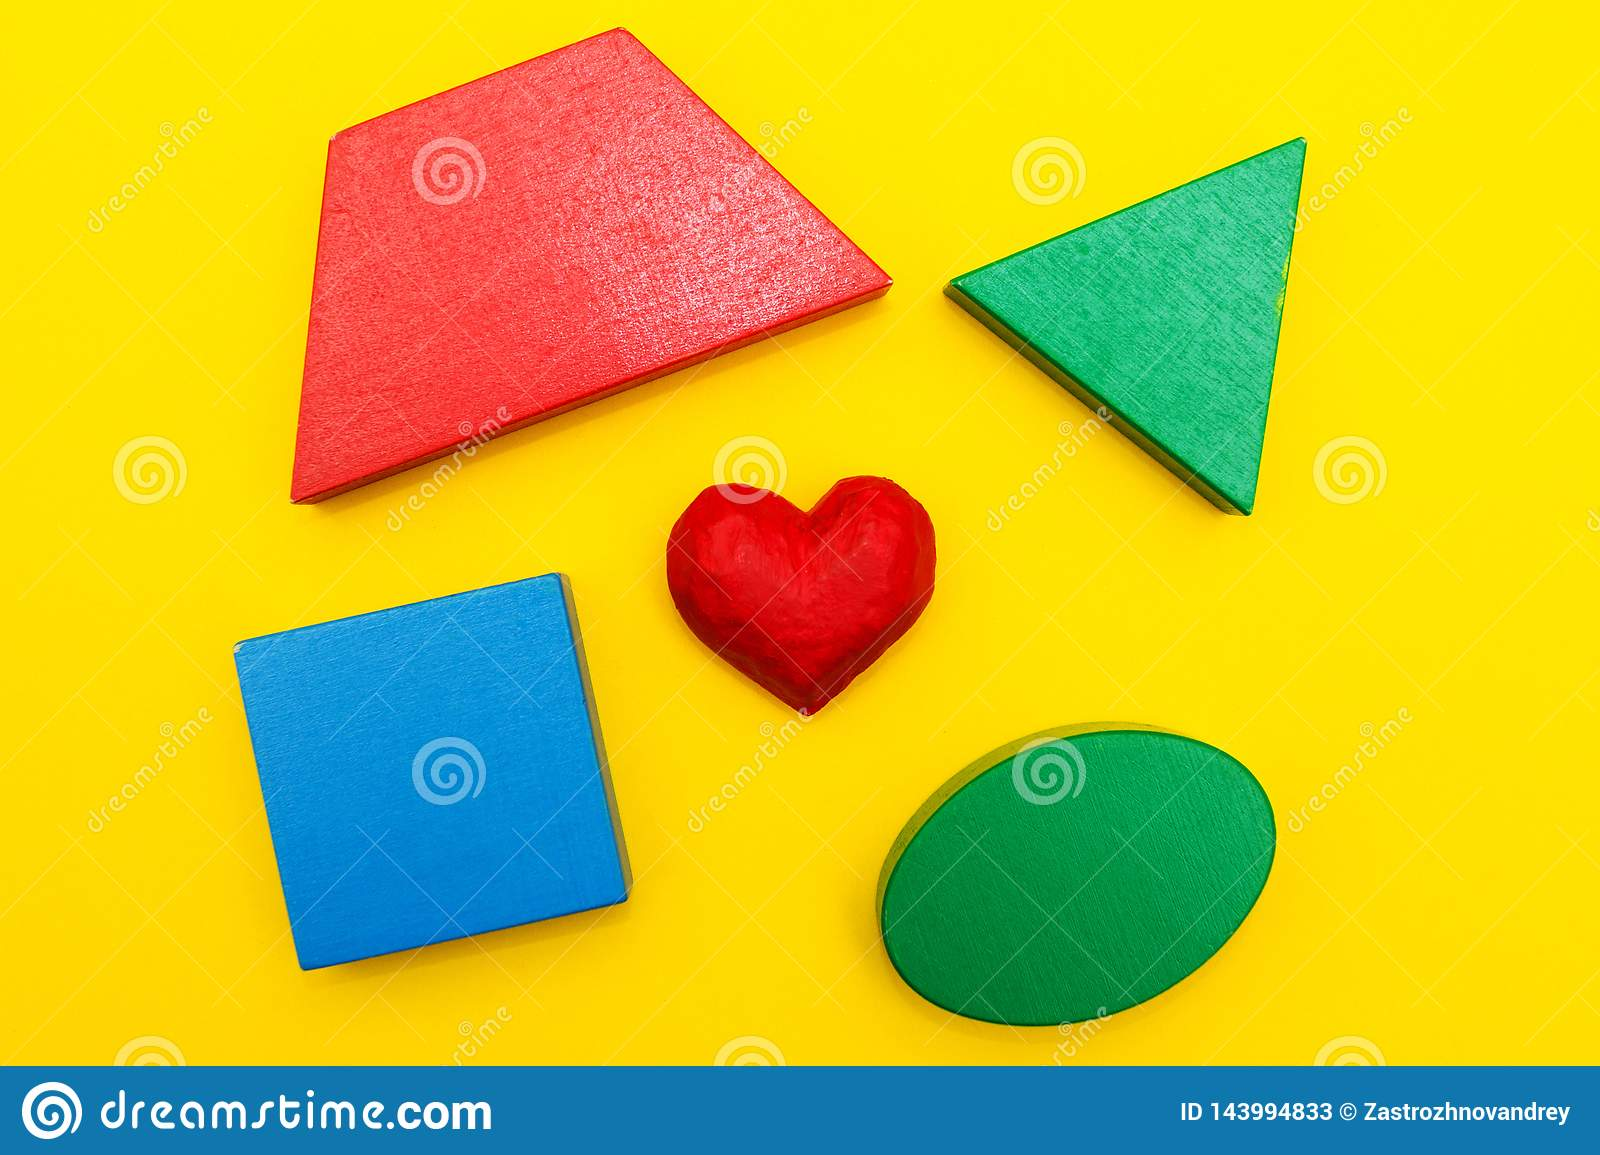 Figures and heart on a yellow background